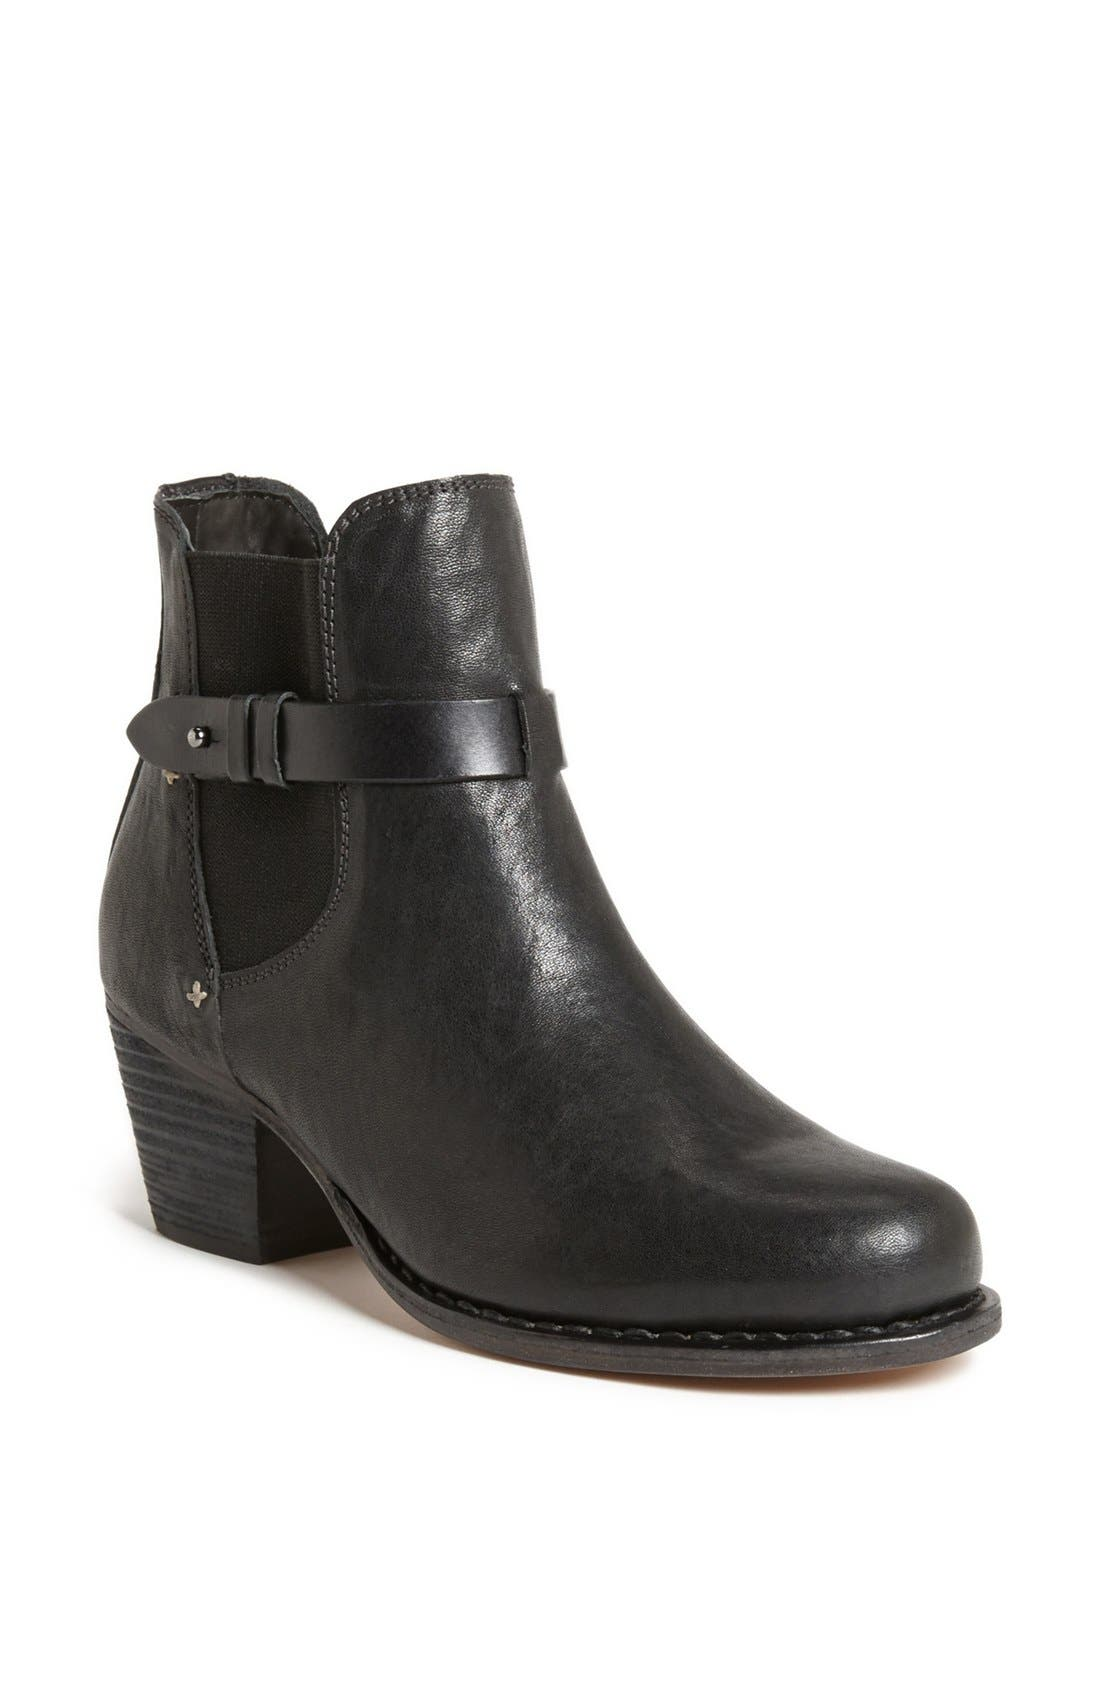 Alternate Image 1 Selected - rag & bone 'Durham' Bootie